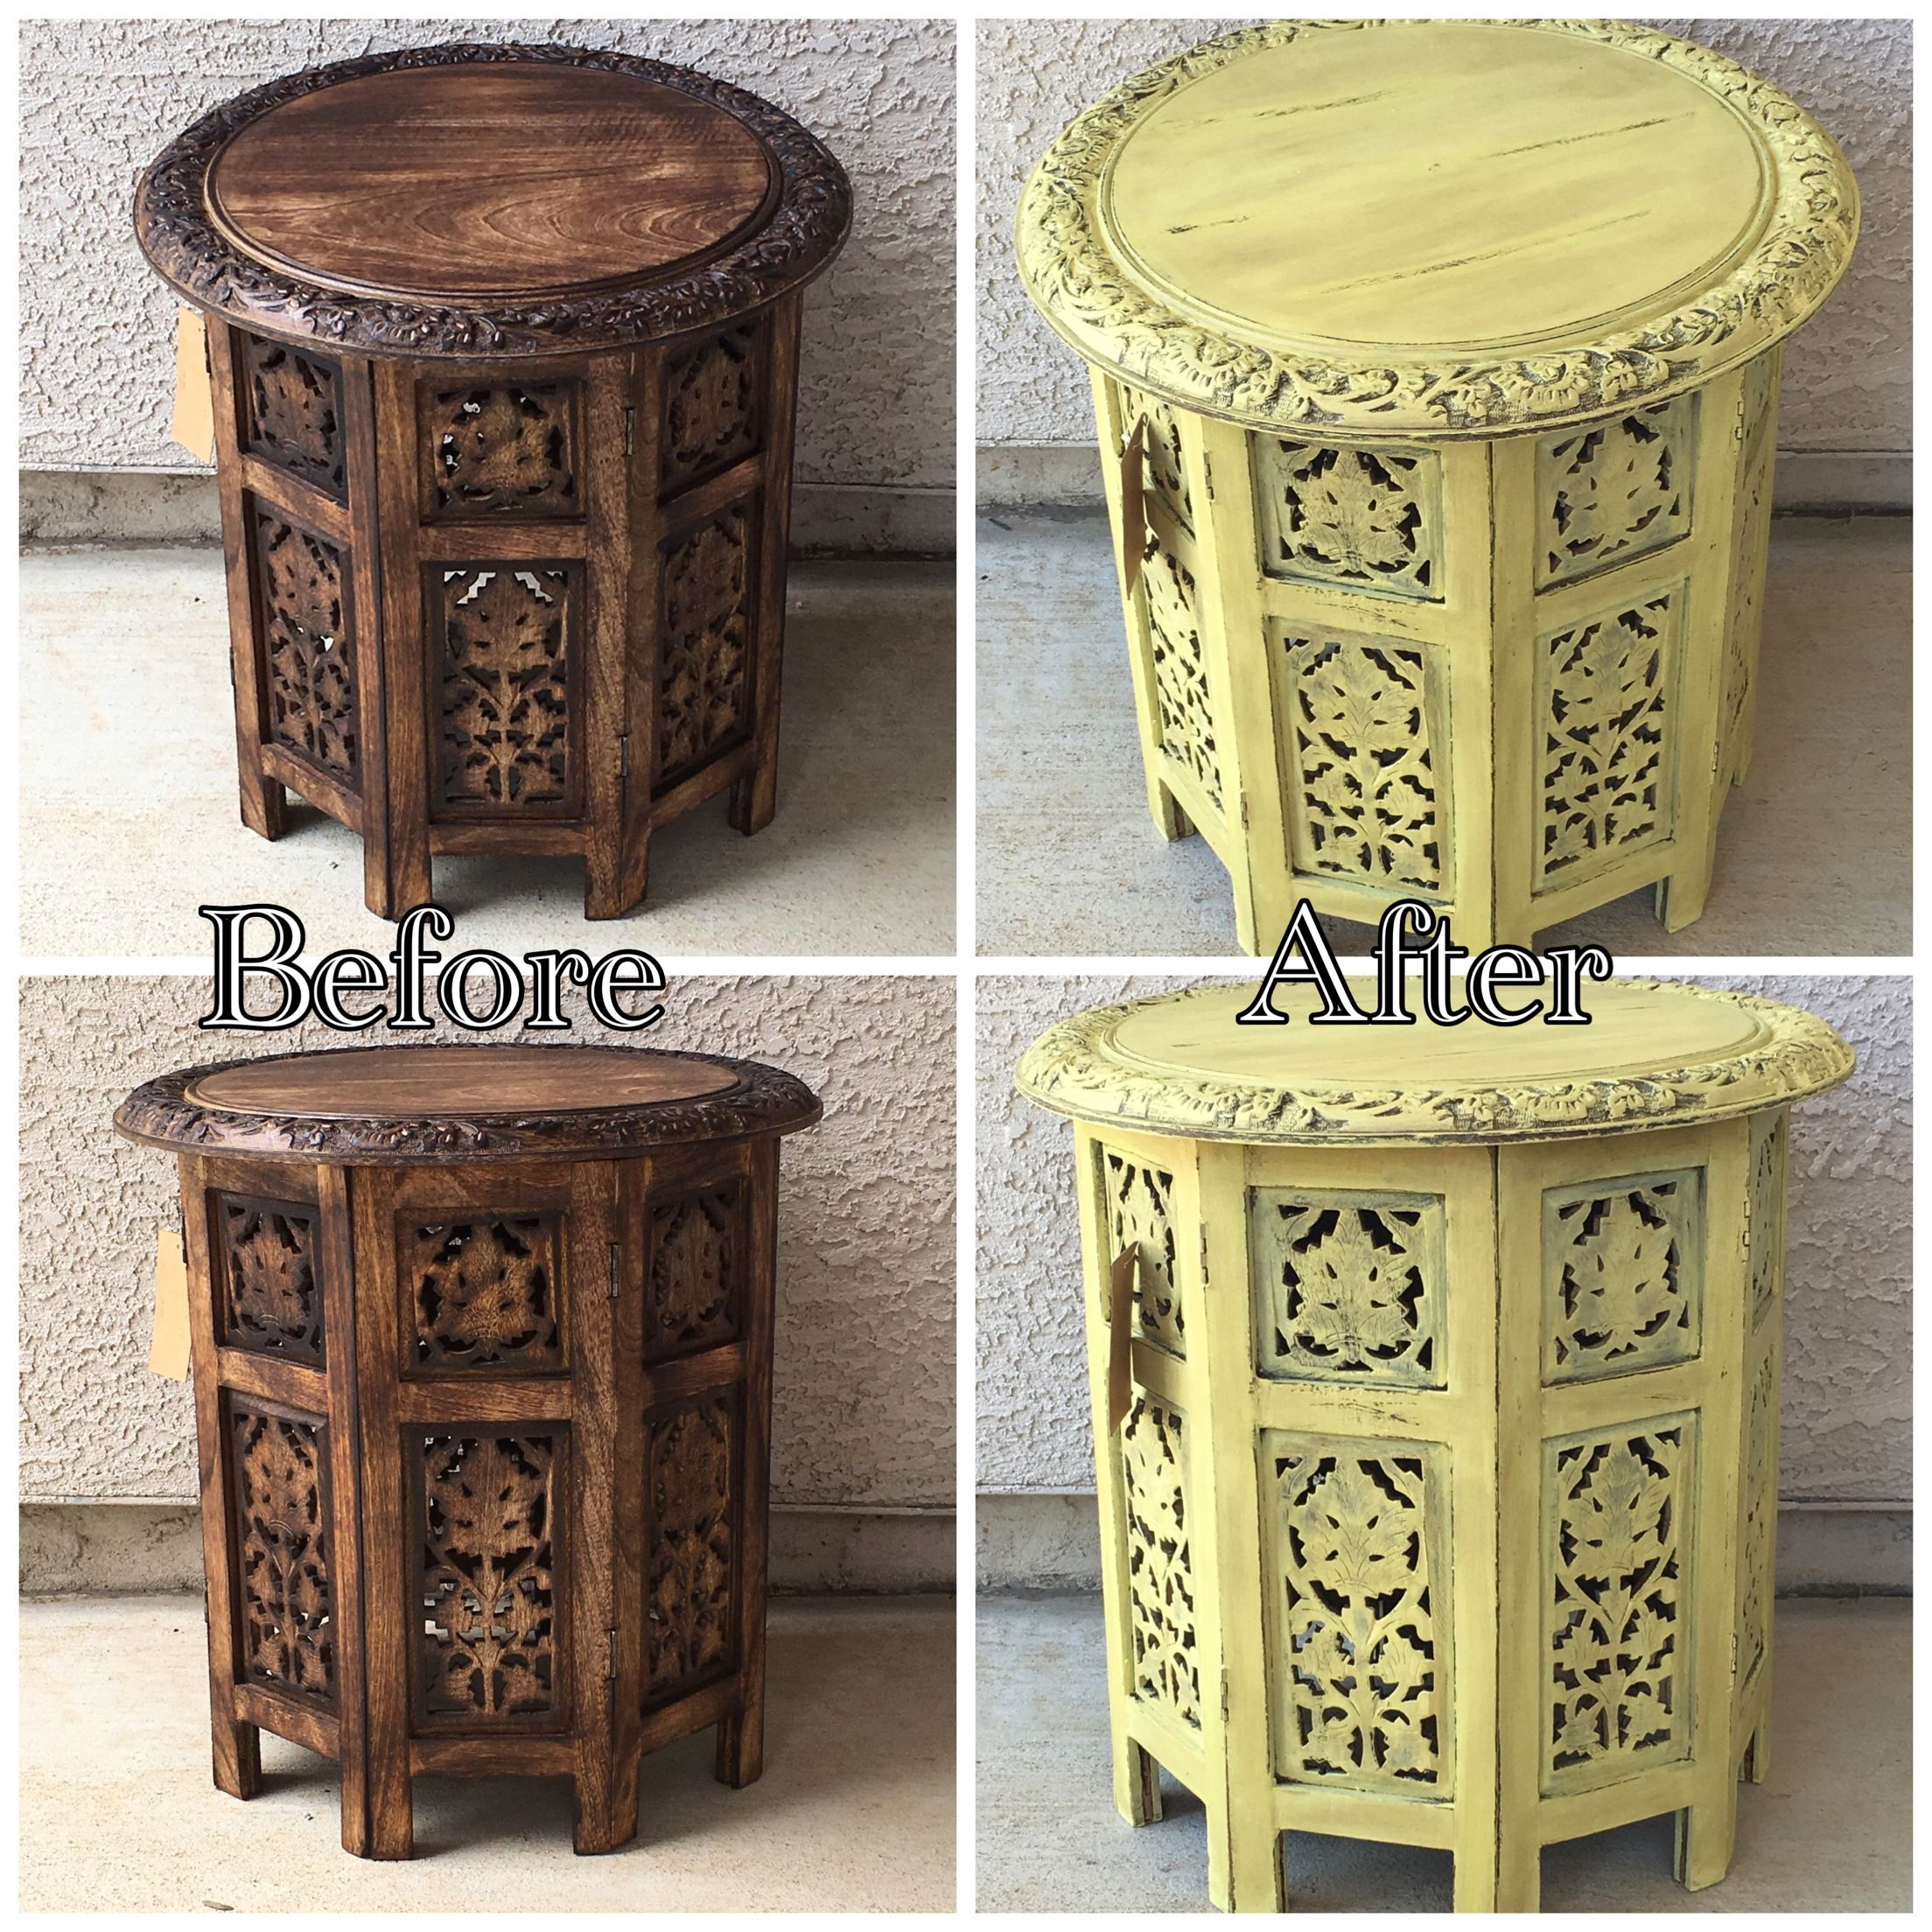 Martha Stewart Chalk Paint Tomatillo Color With Dark Wax And Clear Wax  Coats. Distressed.